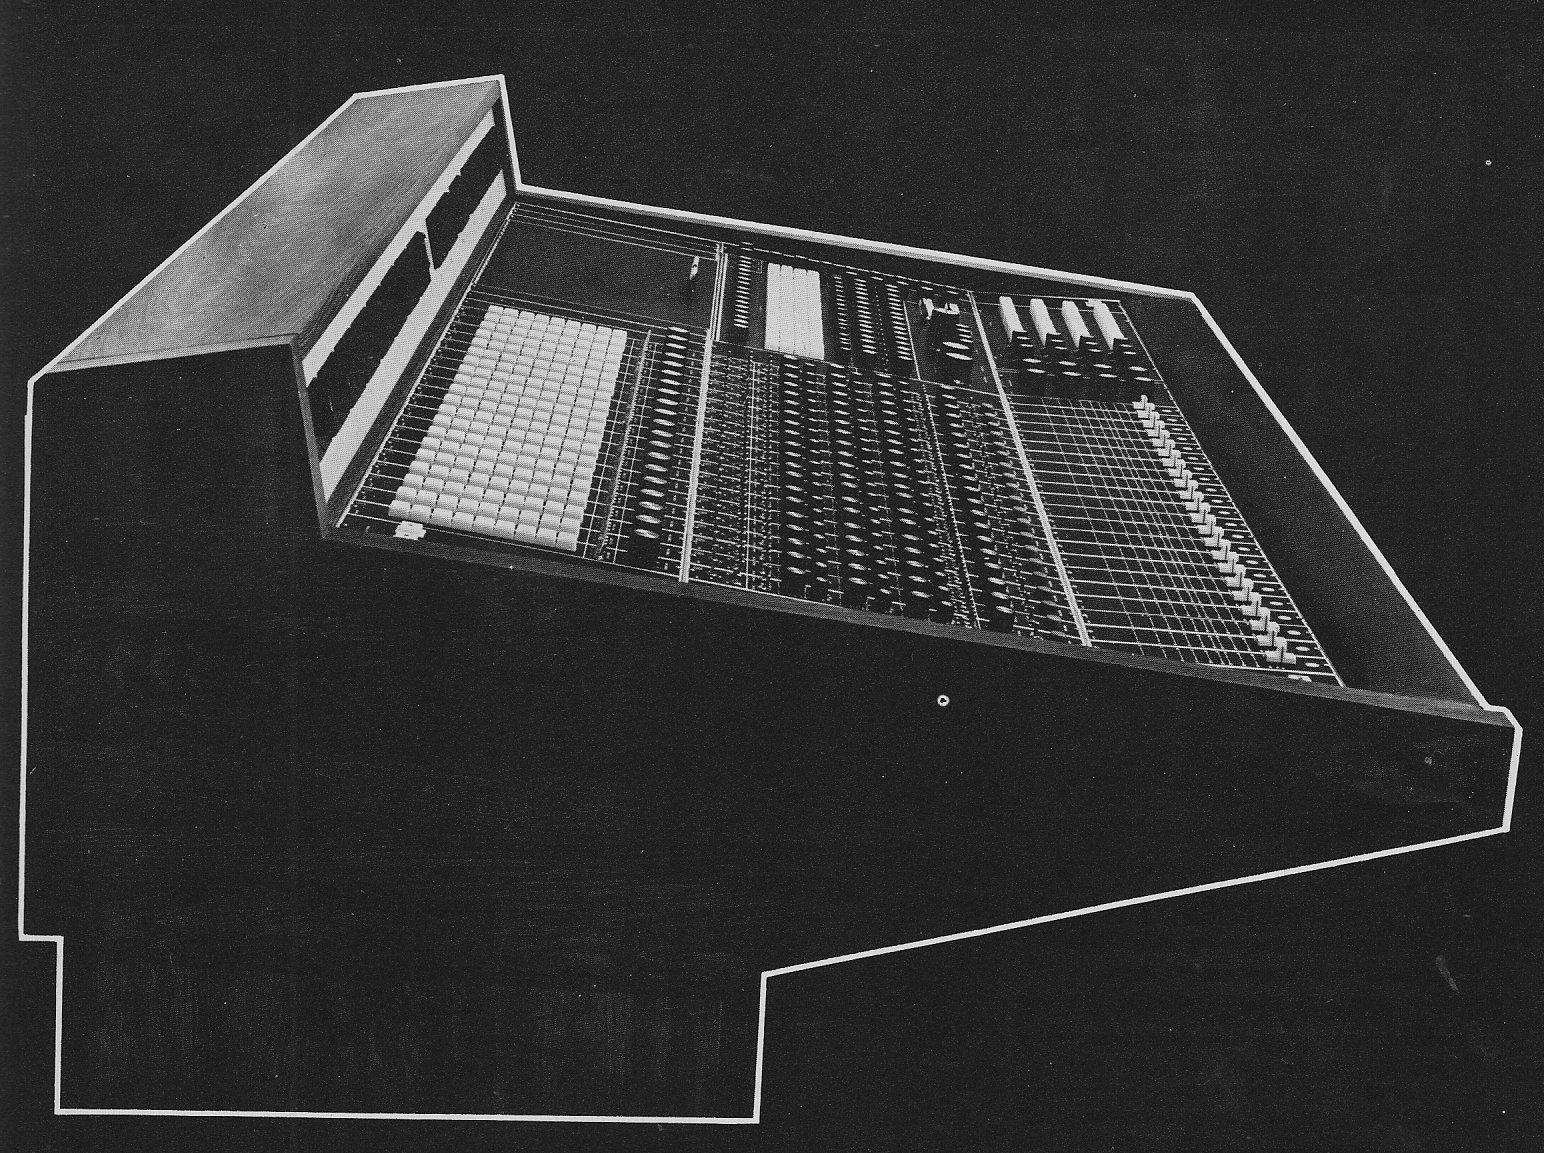 Spectra_Sonics_1020_Console_1972